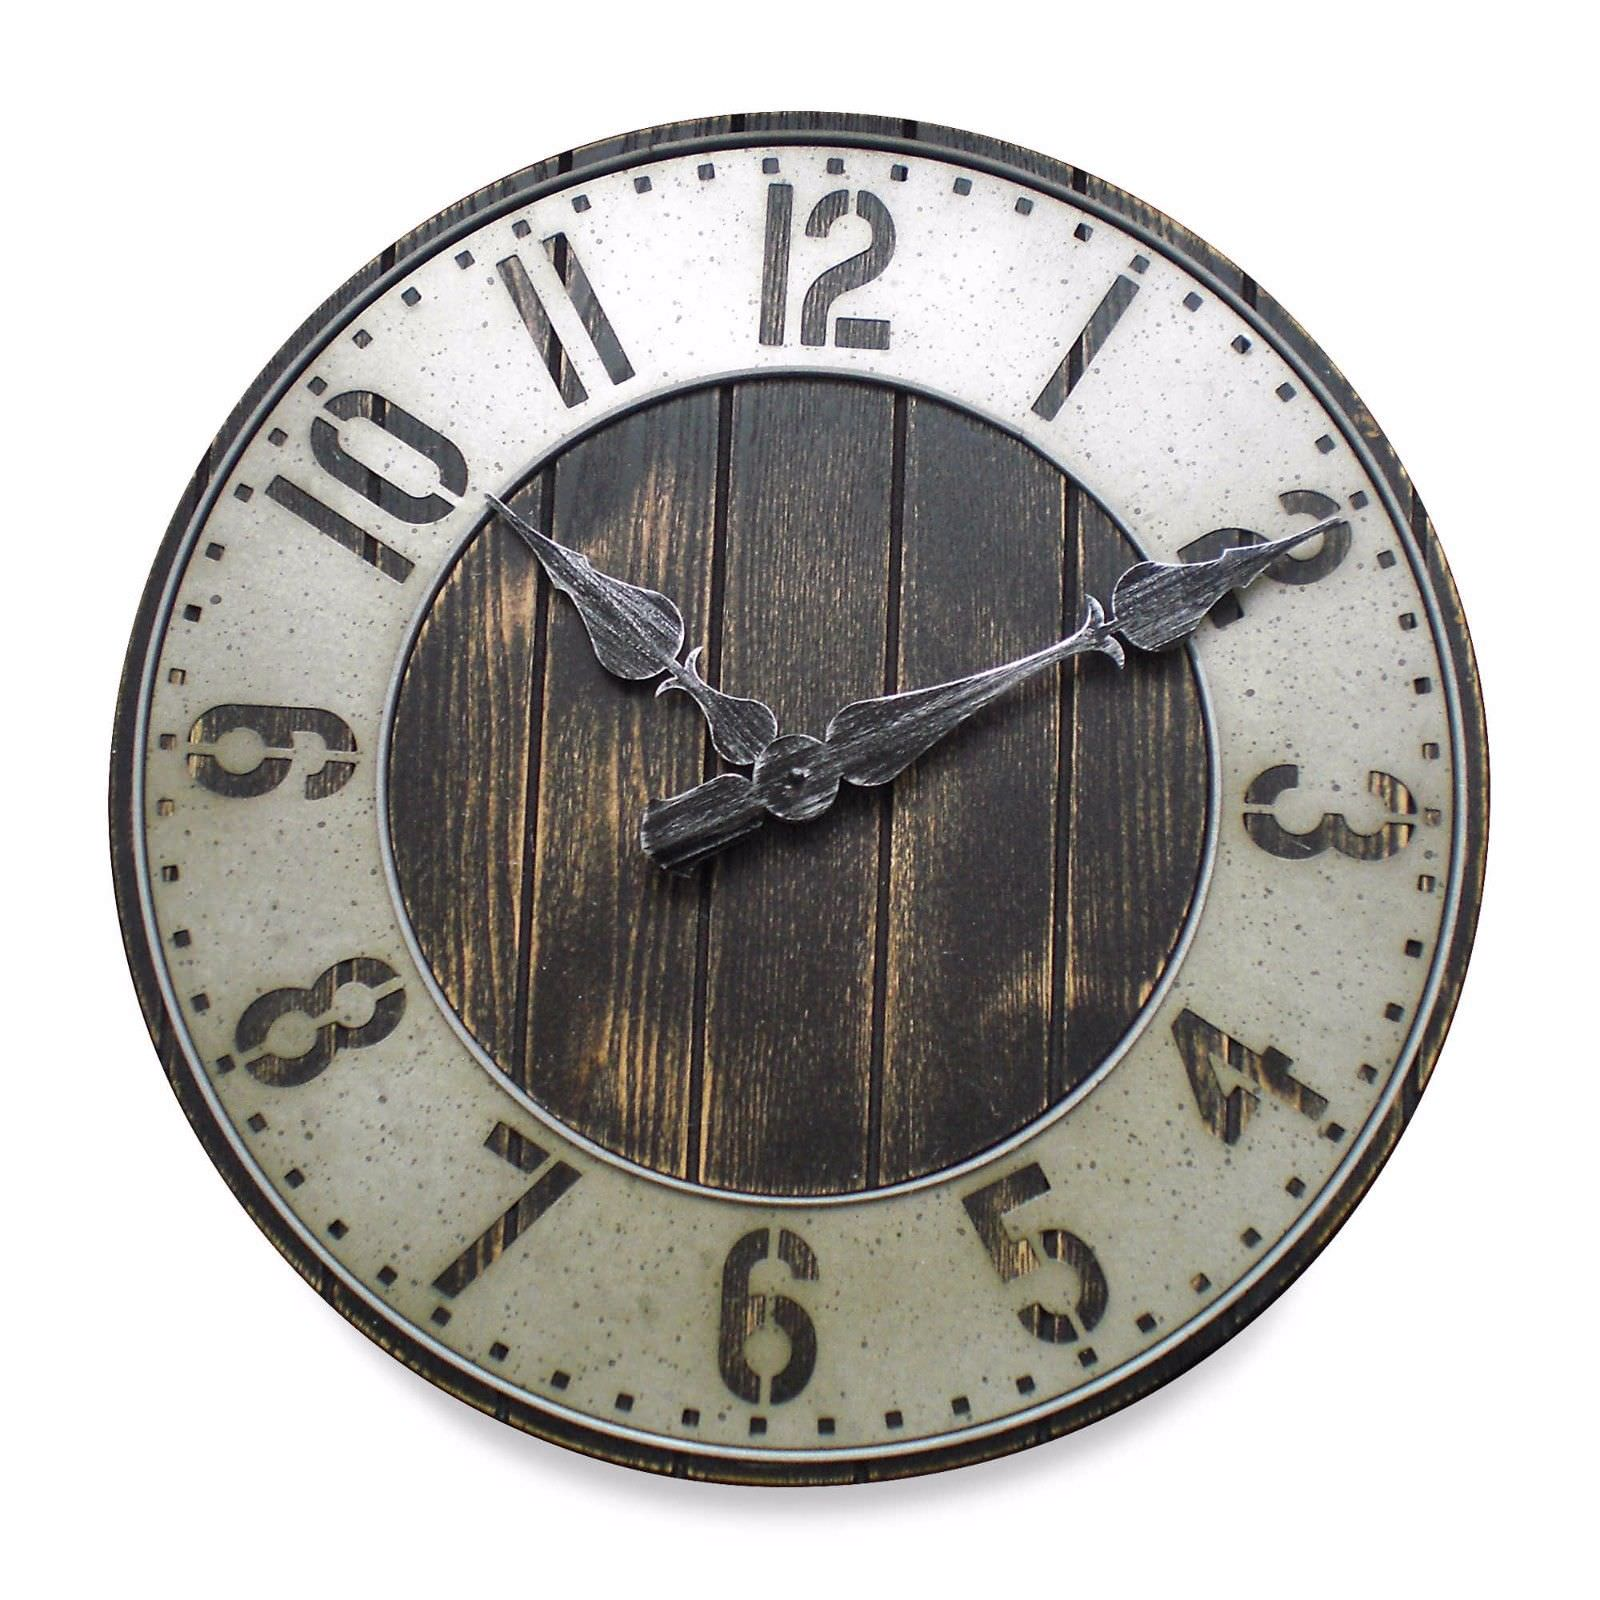 Wall Clock Designs For Home : Industrial wall clock designs ideas design trends